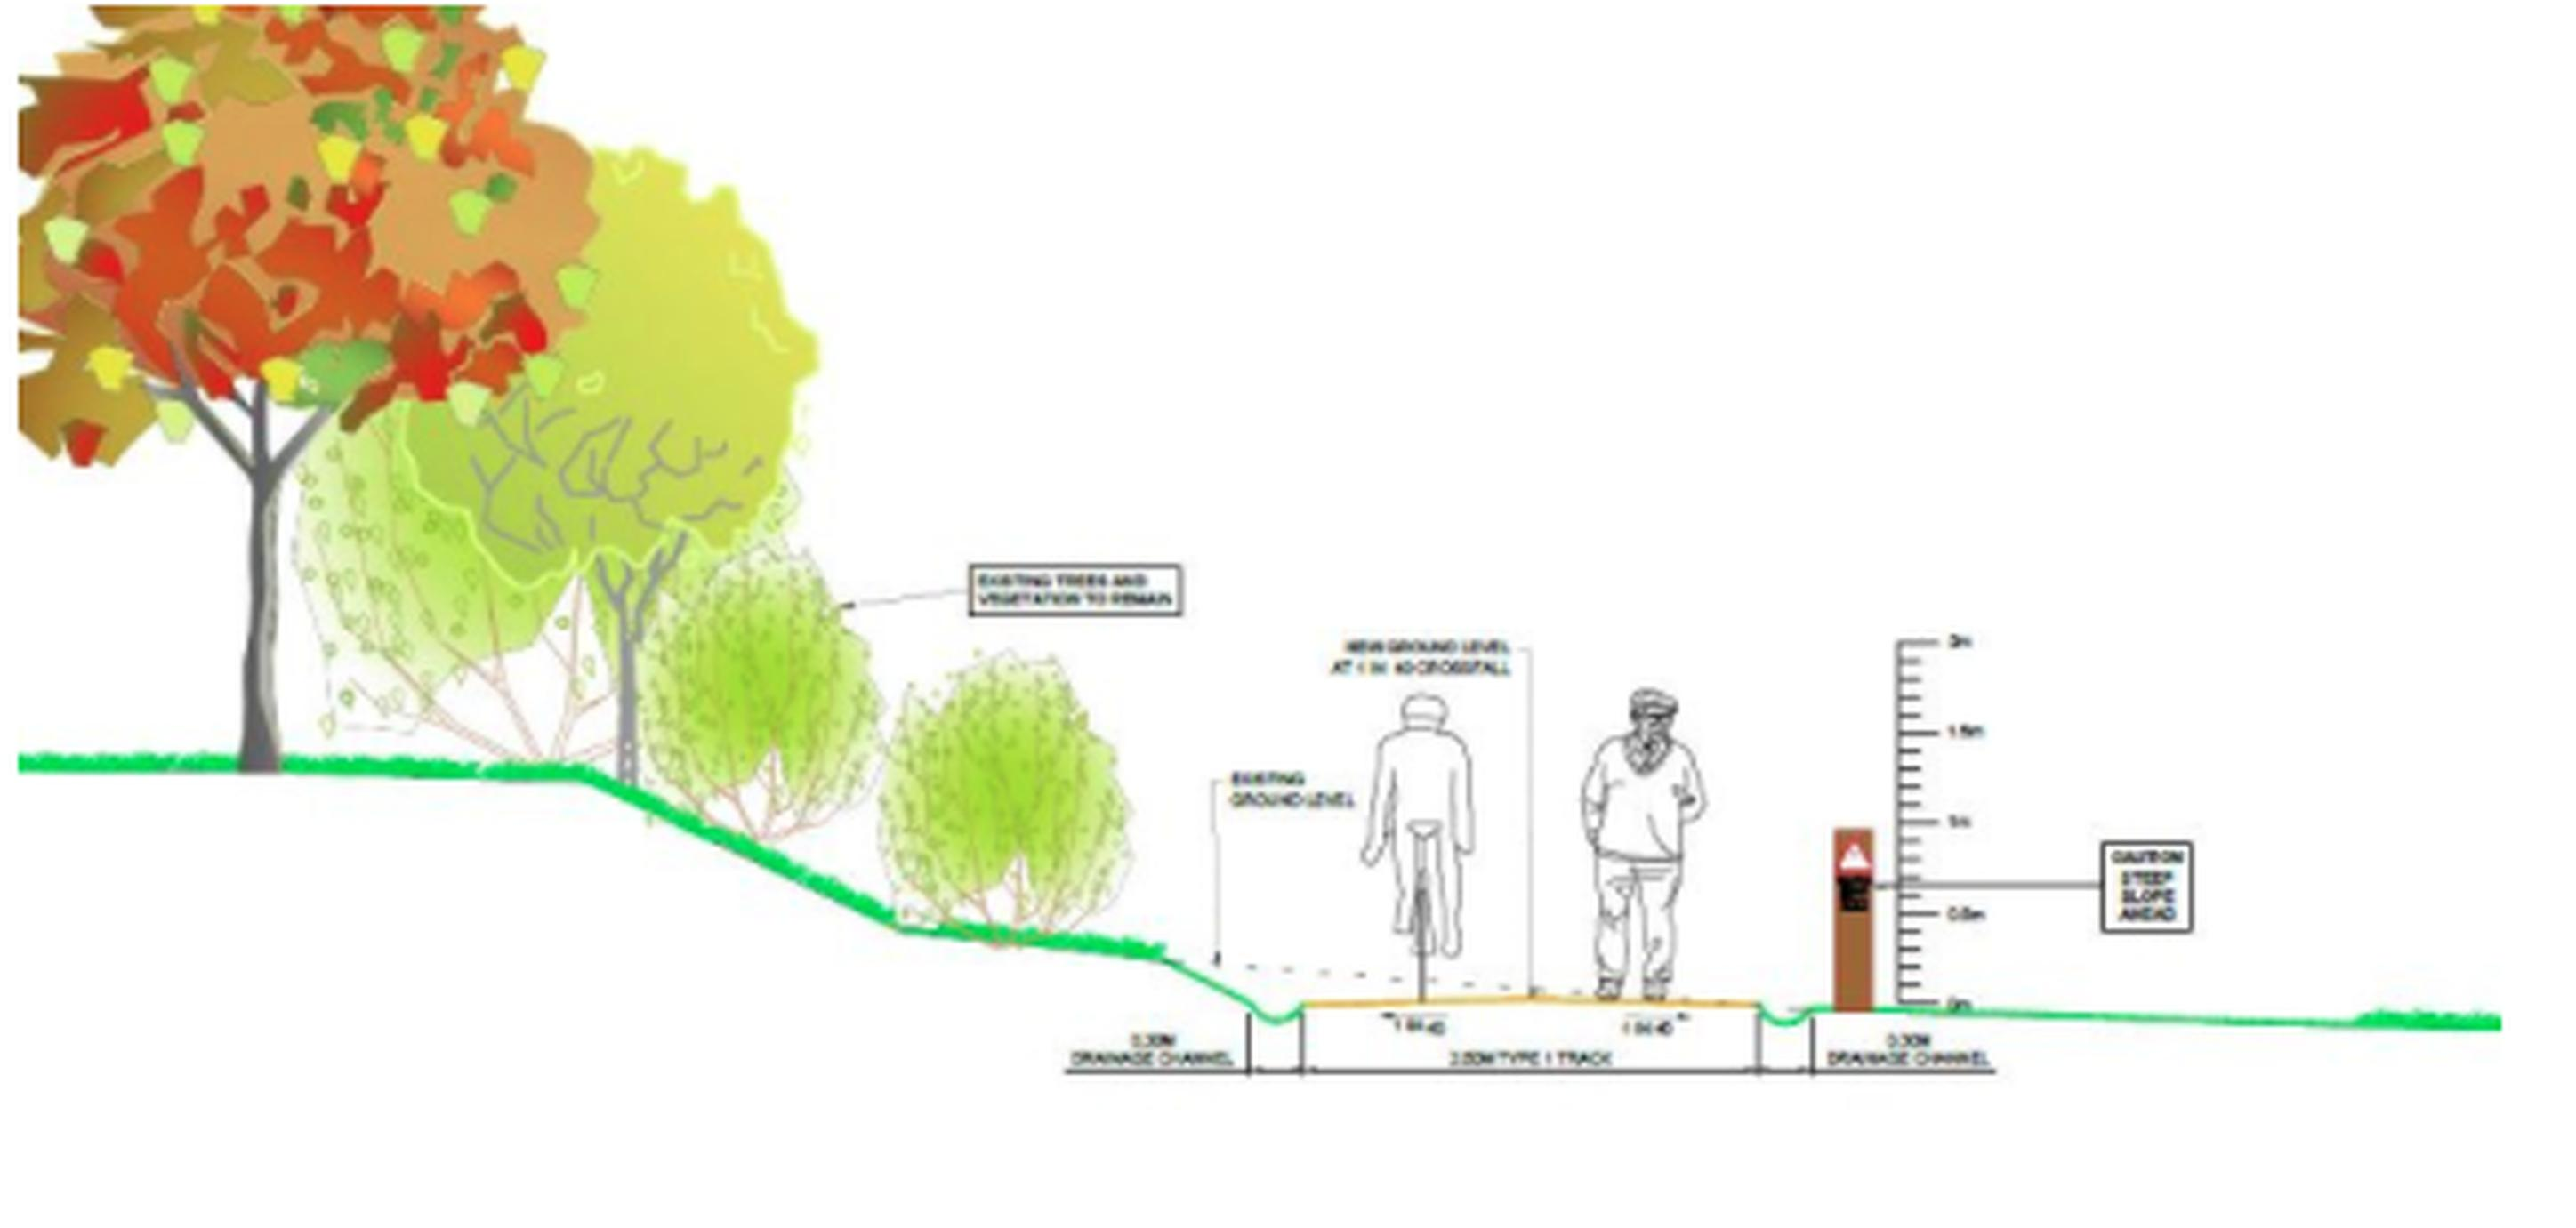 Plans from the Science Vale Cycle Network Project